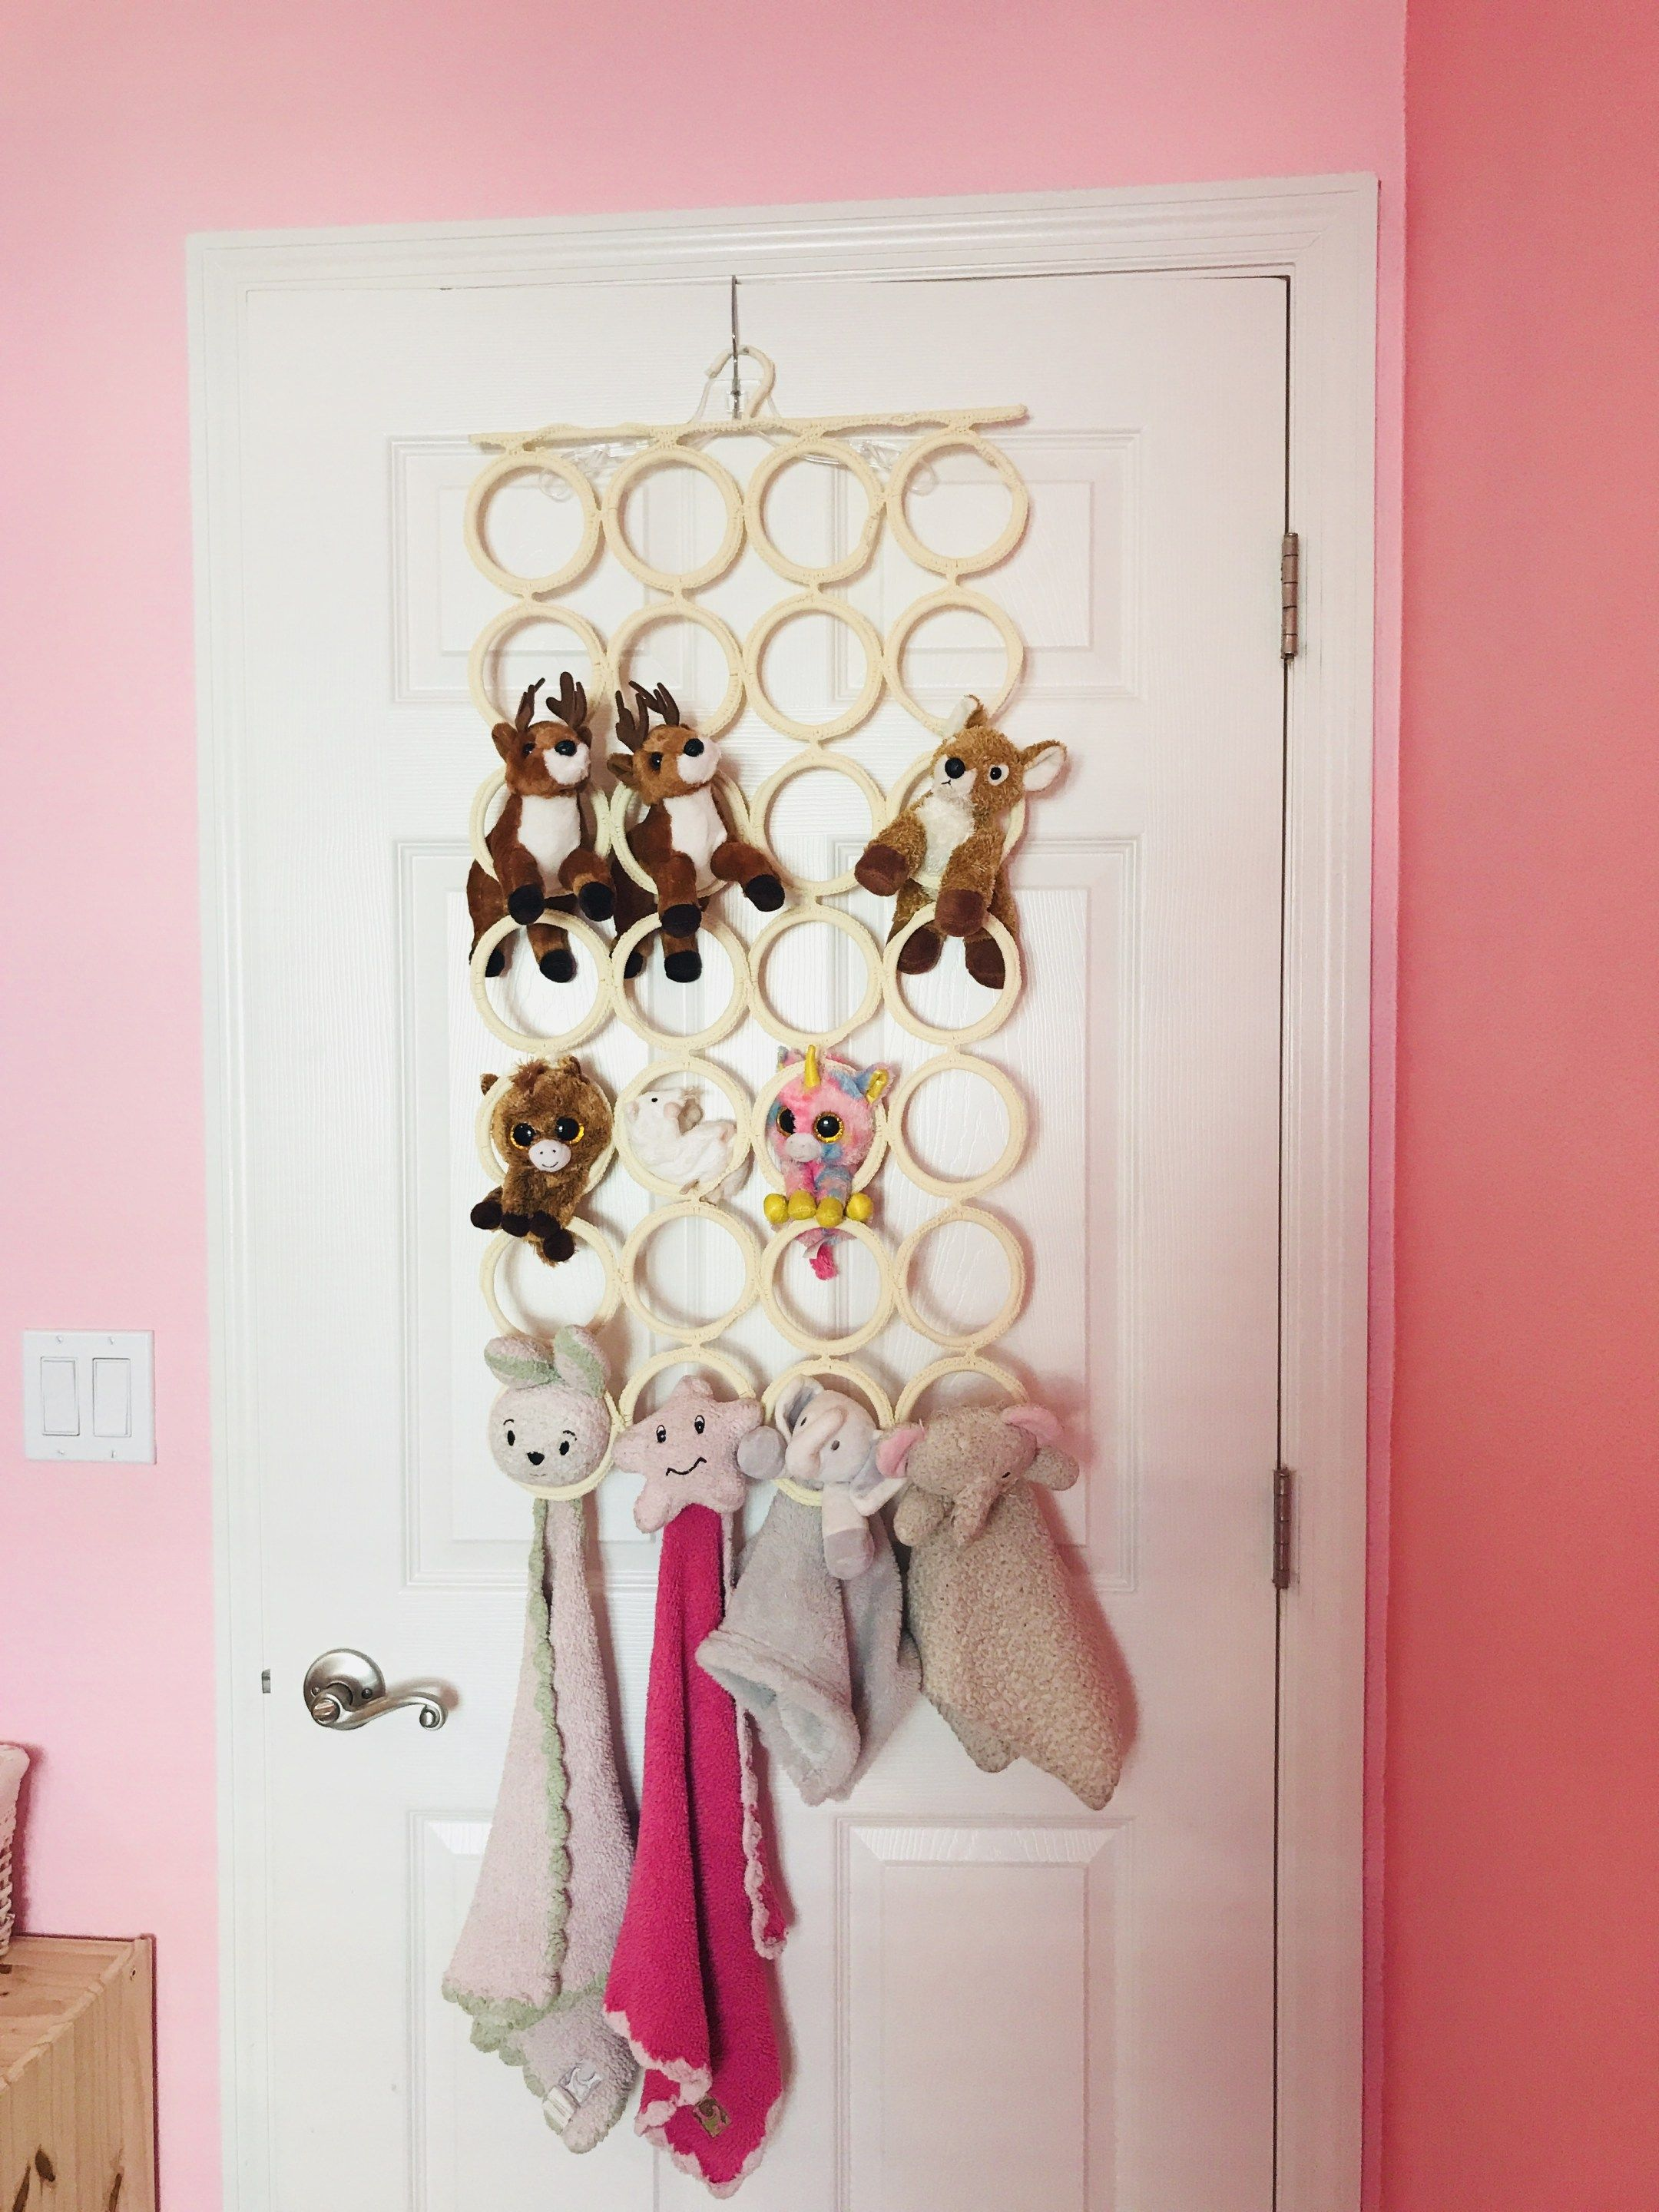 Ikea Toy Storage Hacks For Kids Playrooms   Family Lifestyle